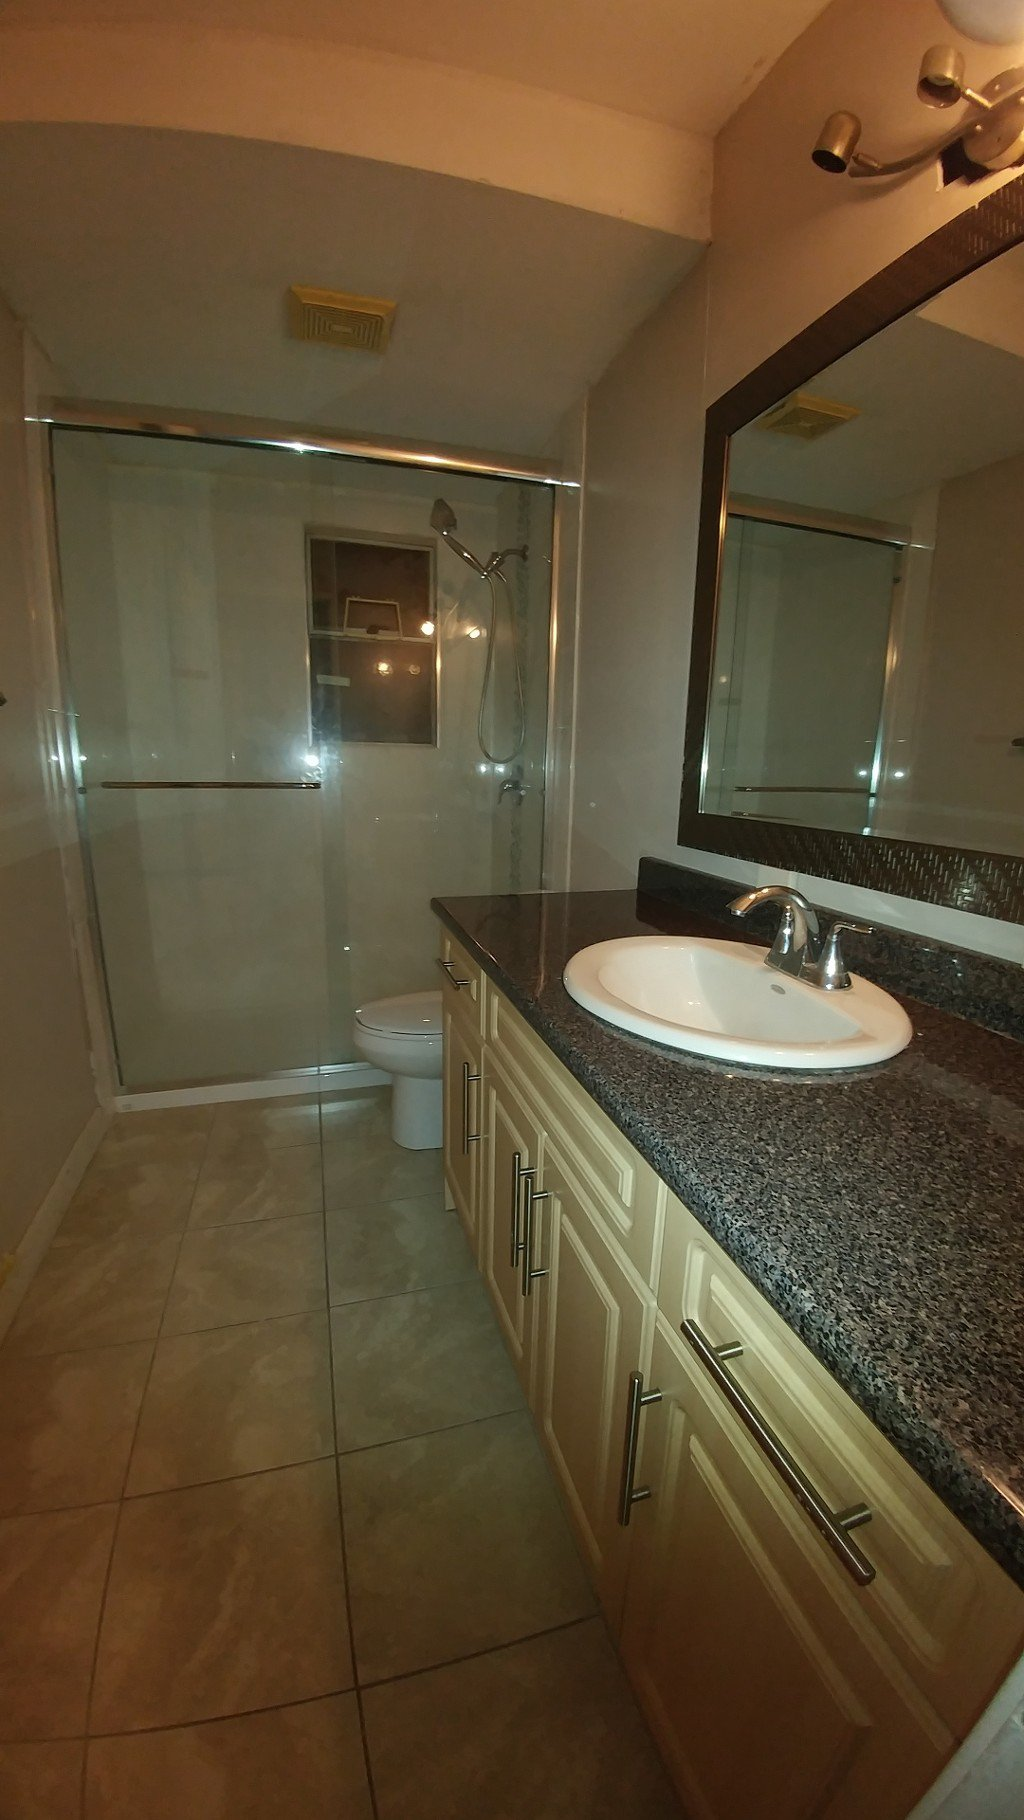 Photo 3: Photos: 5442 Rumble St in Burnaby: Condo for rent (Burnaby South)